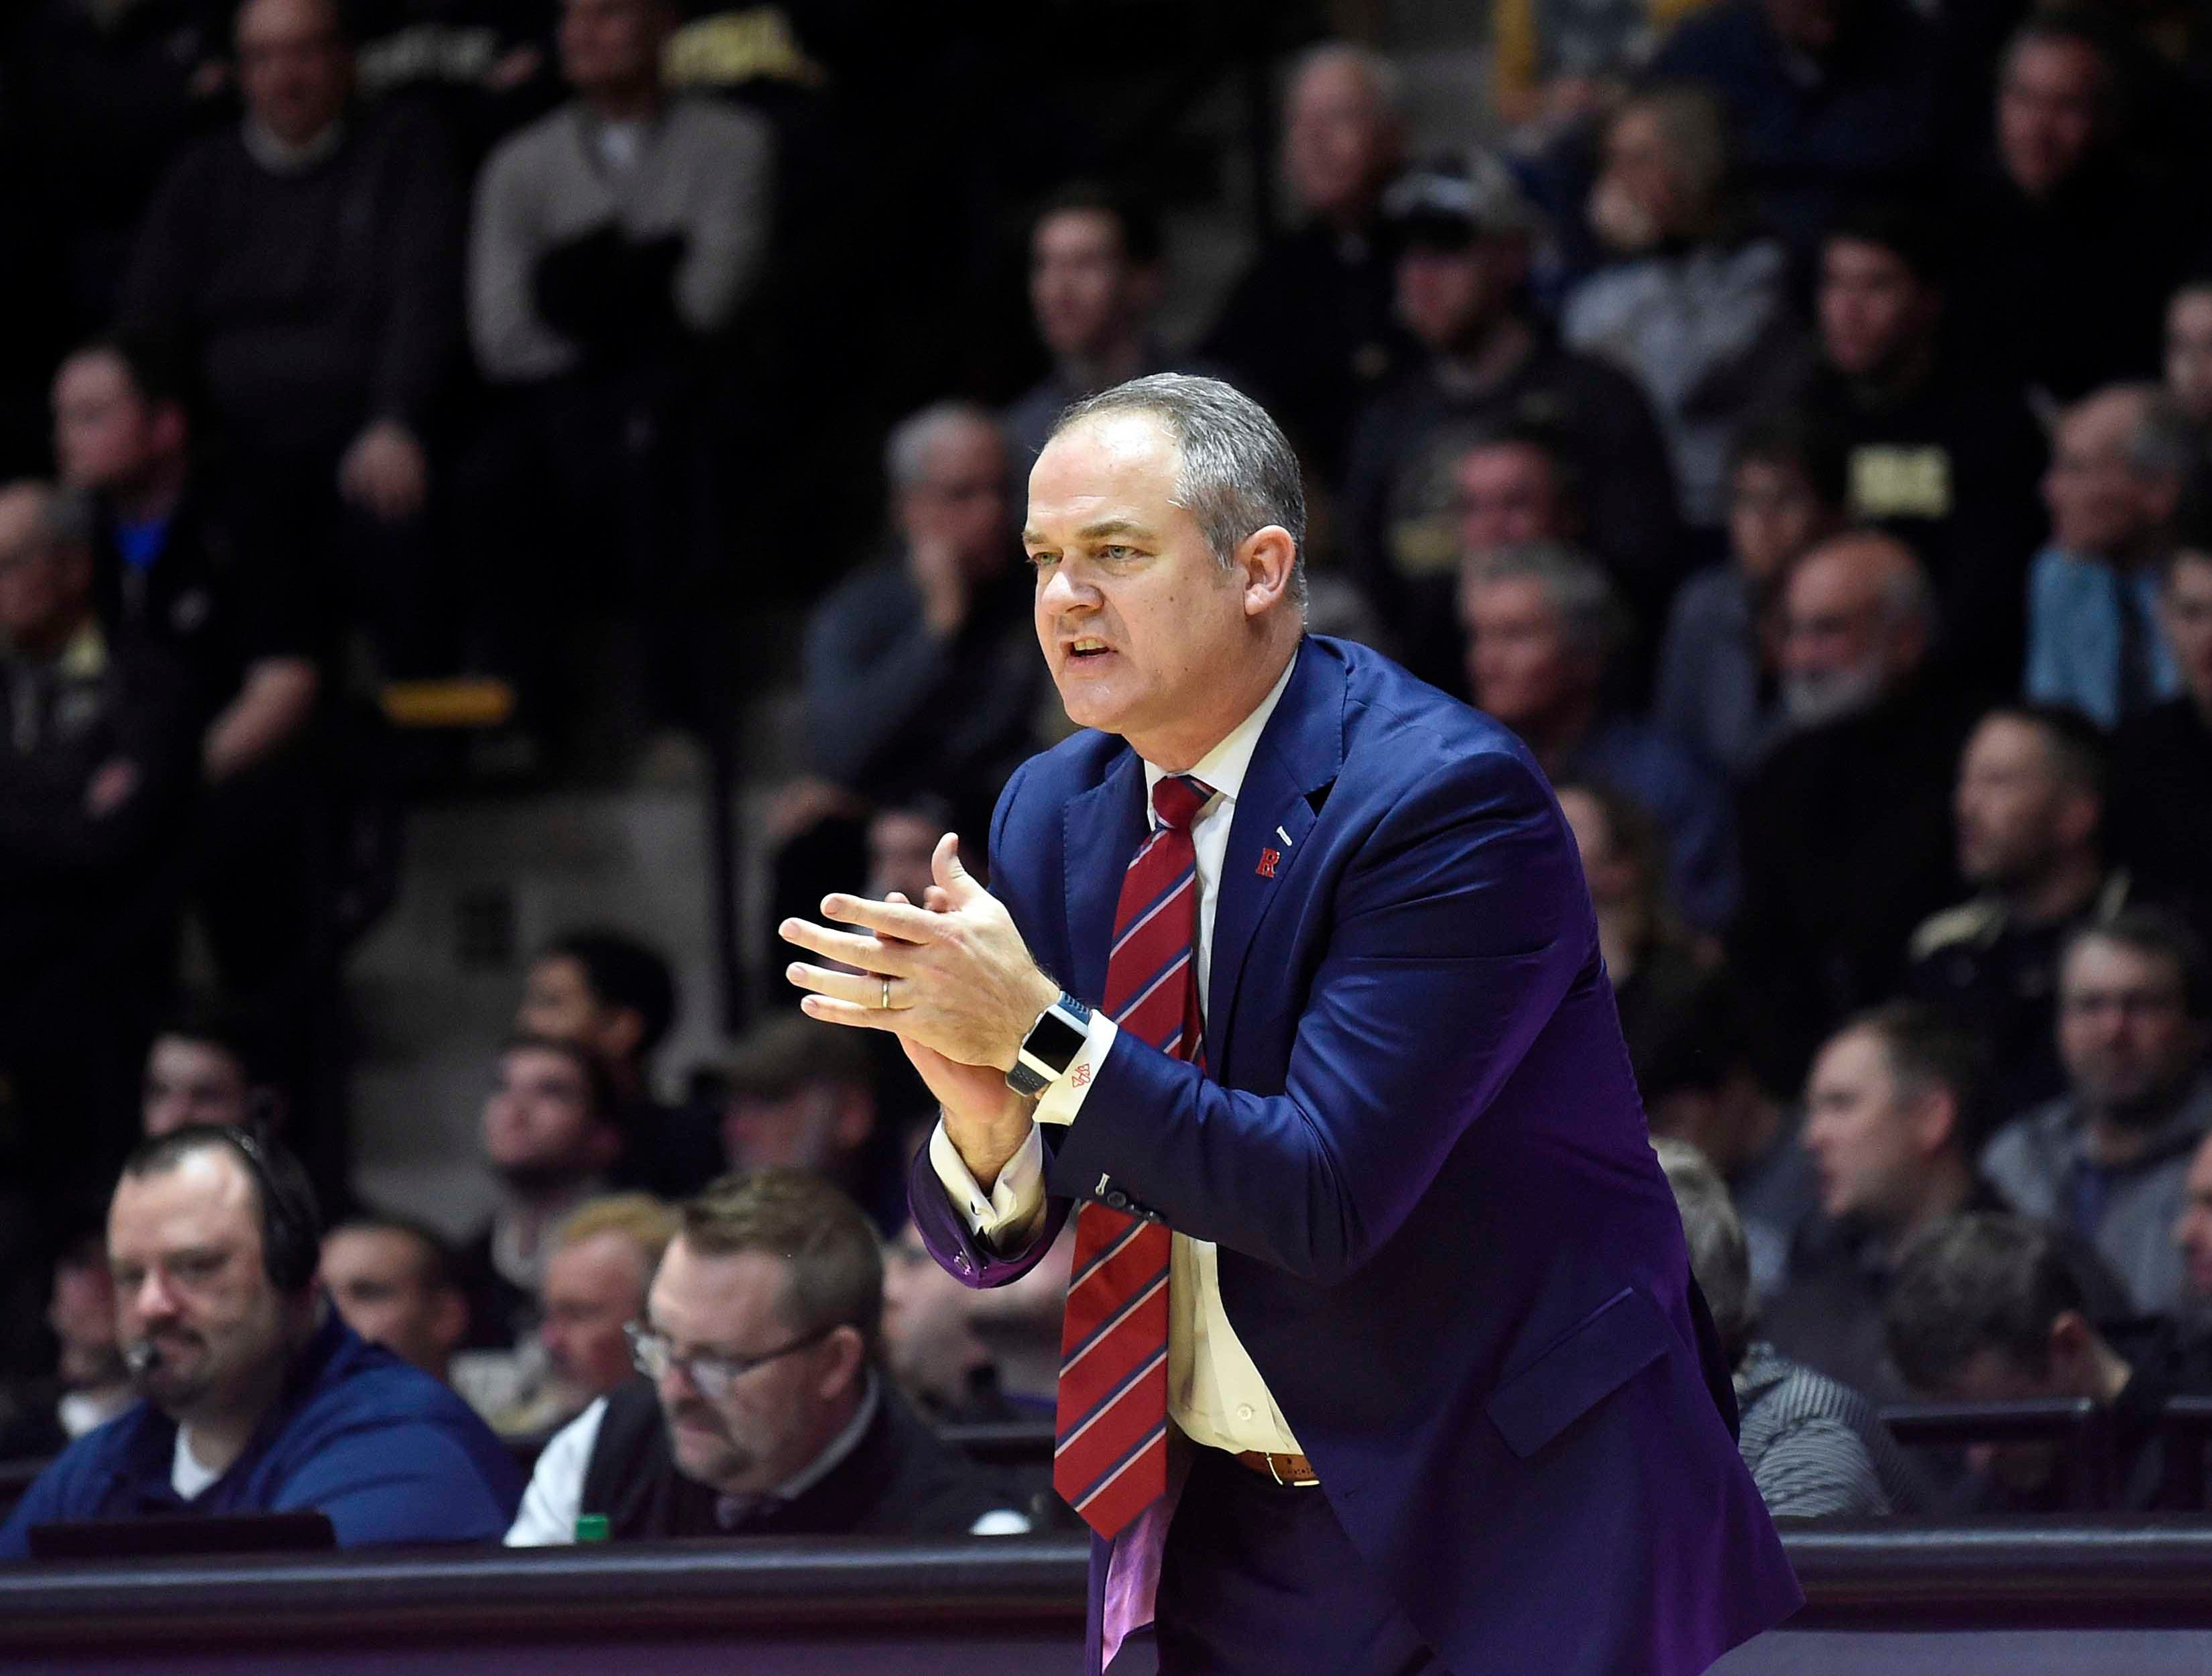 Jan 15, 2019; West Lafayette, IN, USA; Rutgers Scarlet Knights head coach Steve Pikiell in the first half  at Mackey Arena. Mandatory Credit: Sandra Dukes-USA TODAY Sports